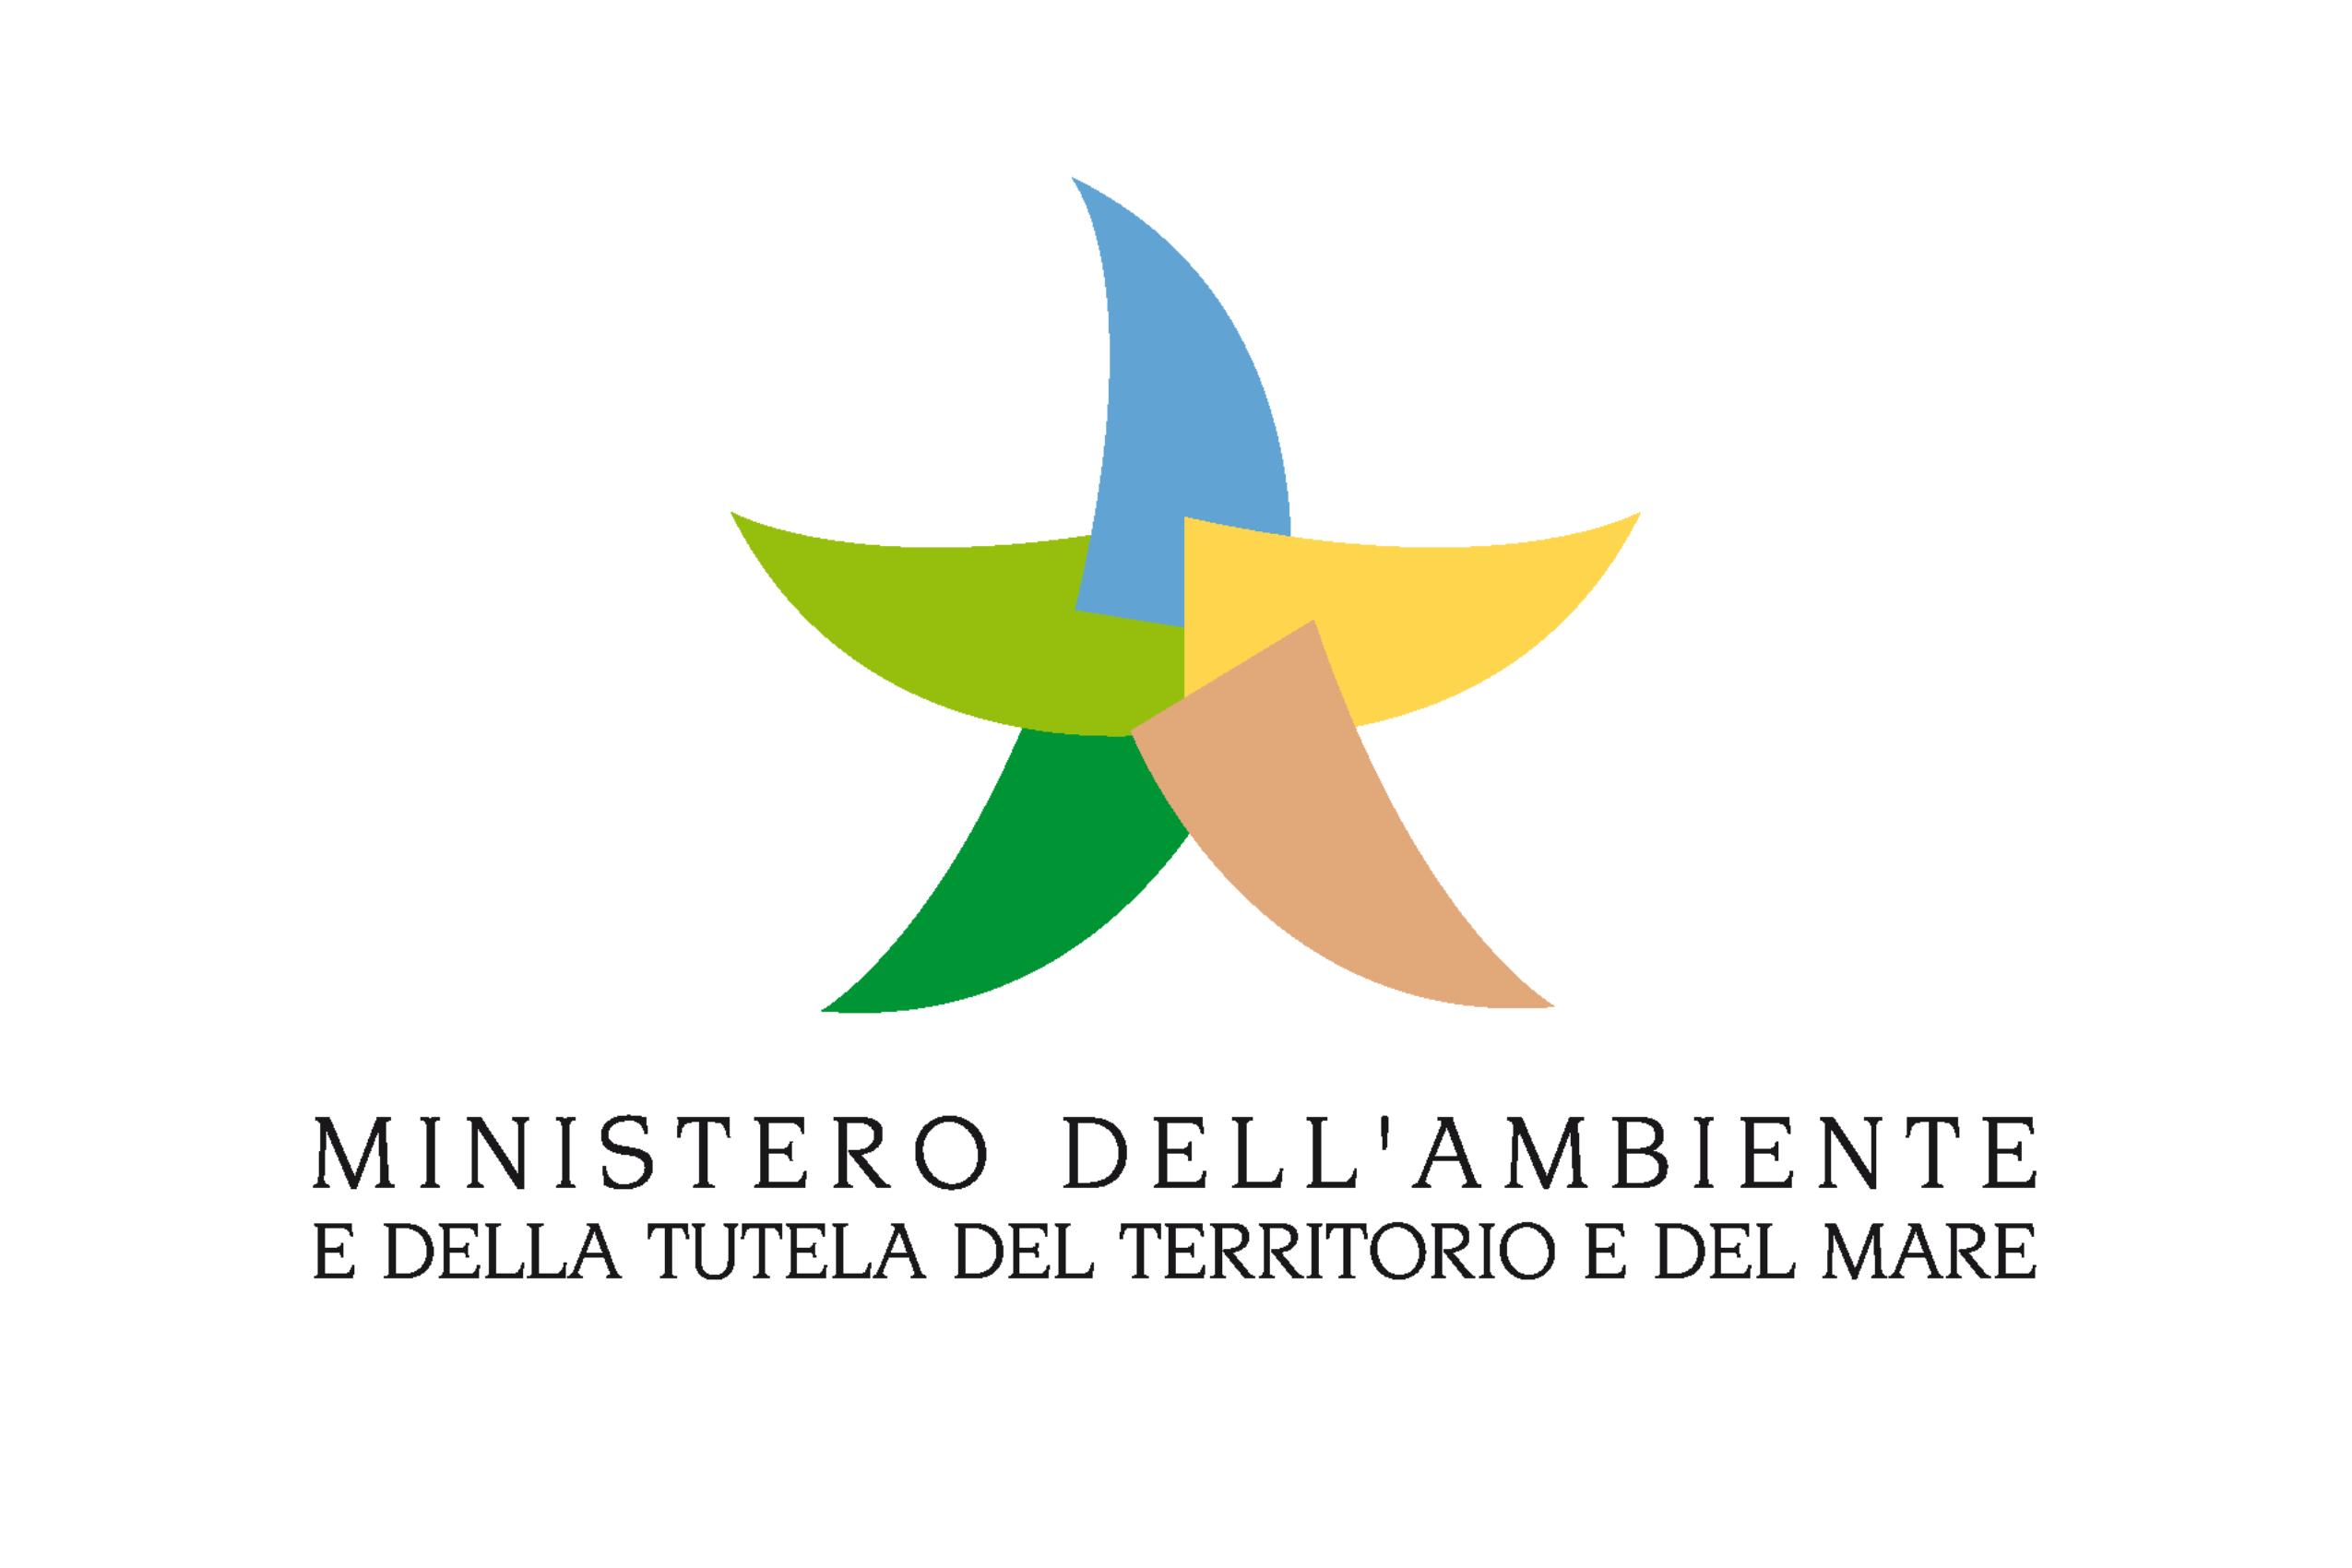 https://europeanplasticspact.org/wp-content/uploads/2021/05/italy-3.png